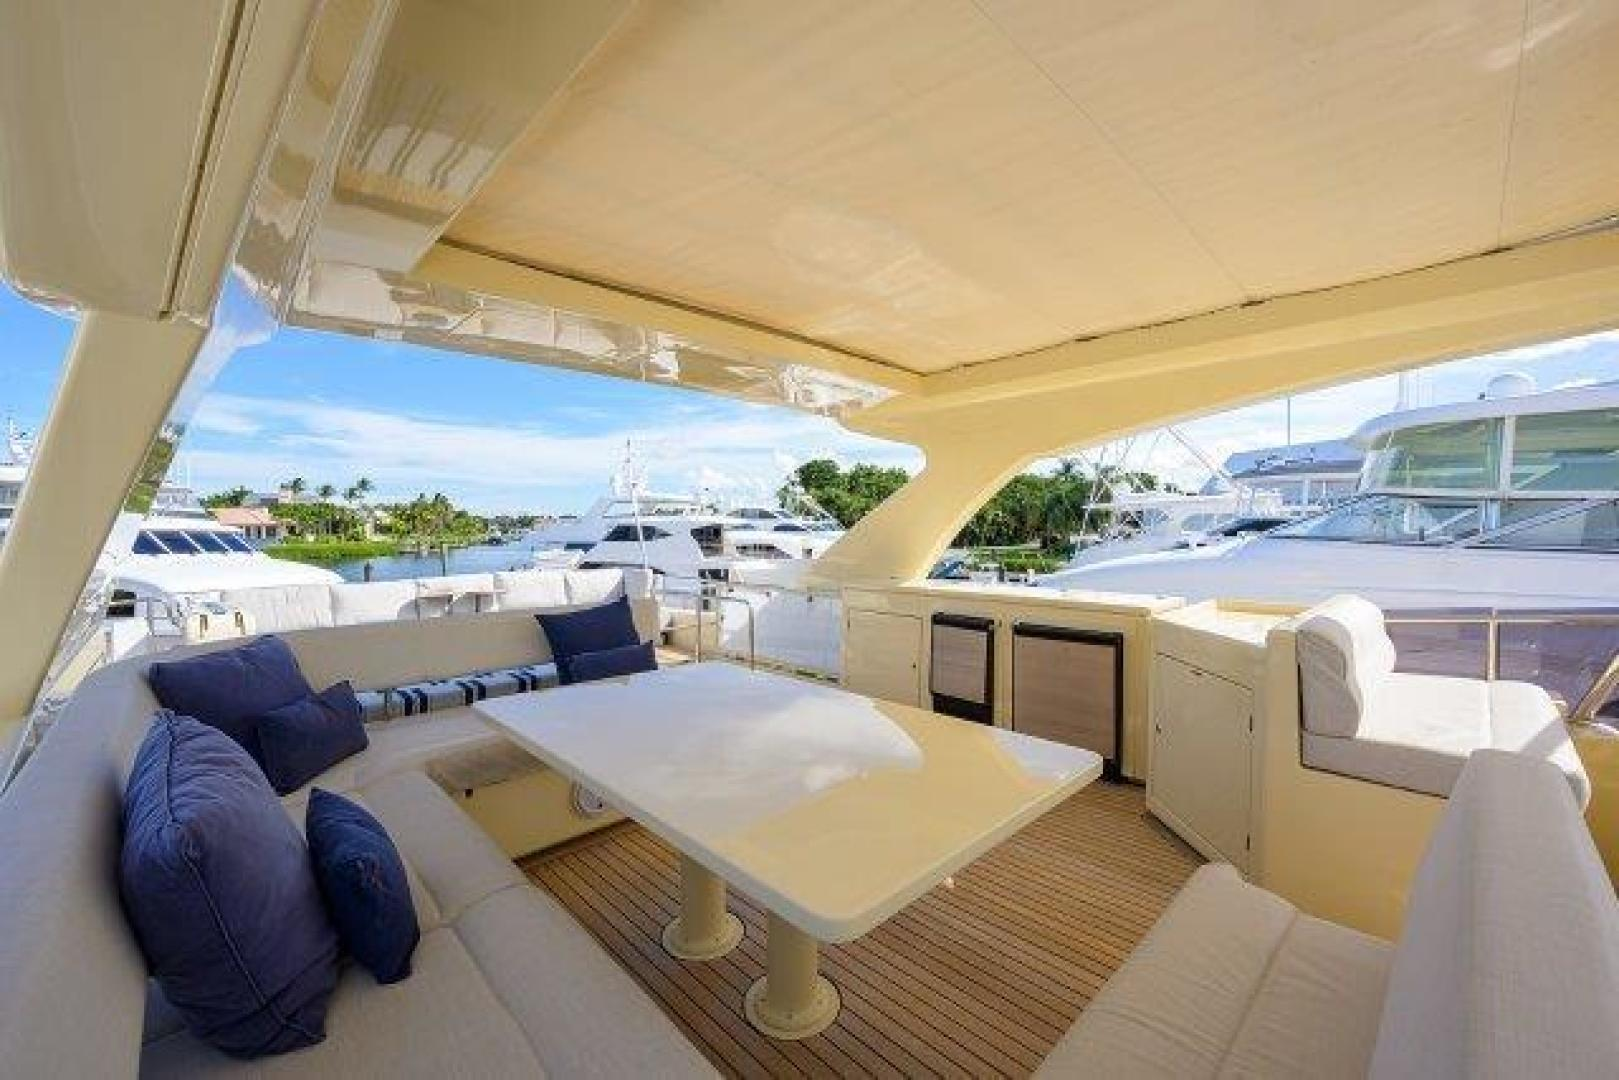 Ferretti Yachts-Altura 840 2010-MISS ALLIED Jupiter-Florida-United States-Flybridge-1518349 | Thumbnail